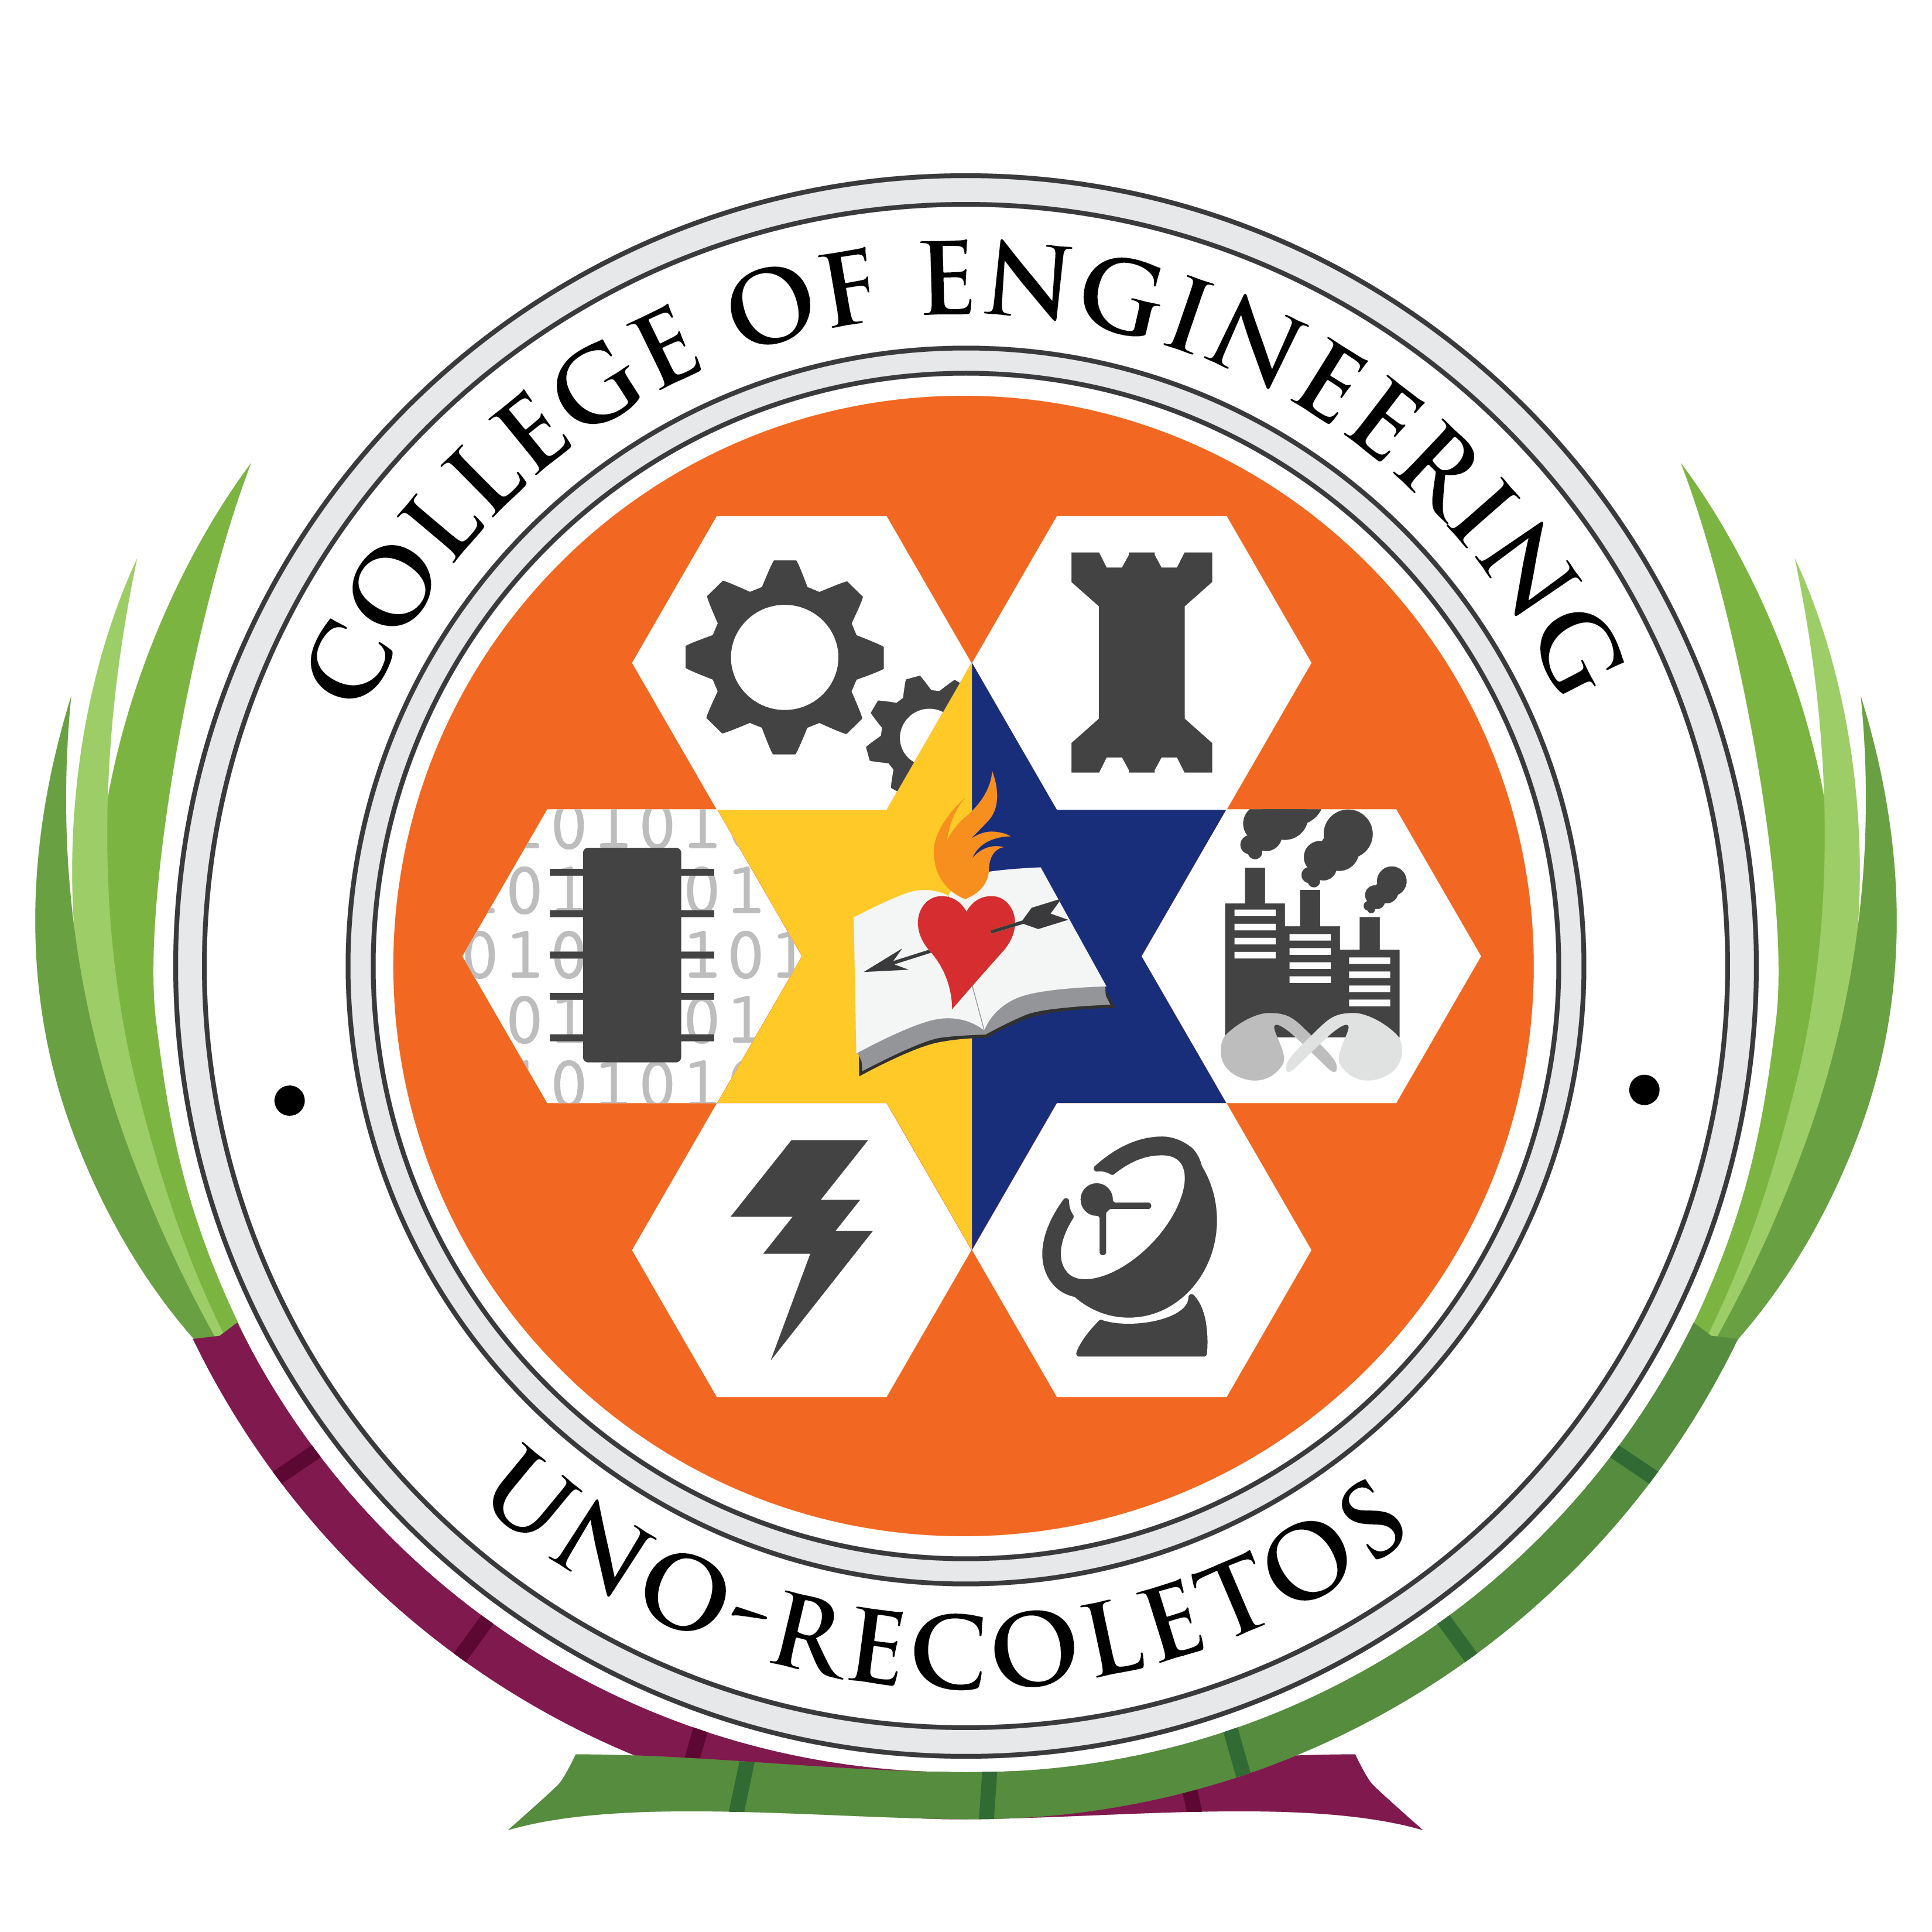 8 New Chemical Engineers For Uno R University Of Negros Occidental